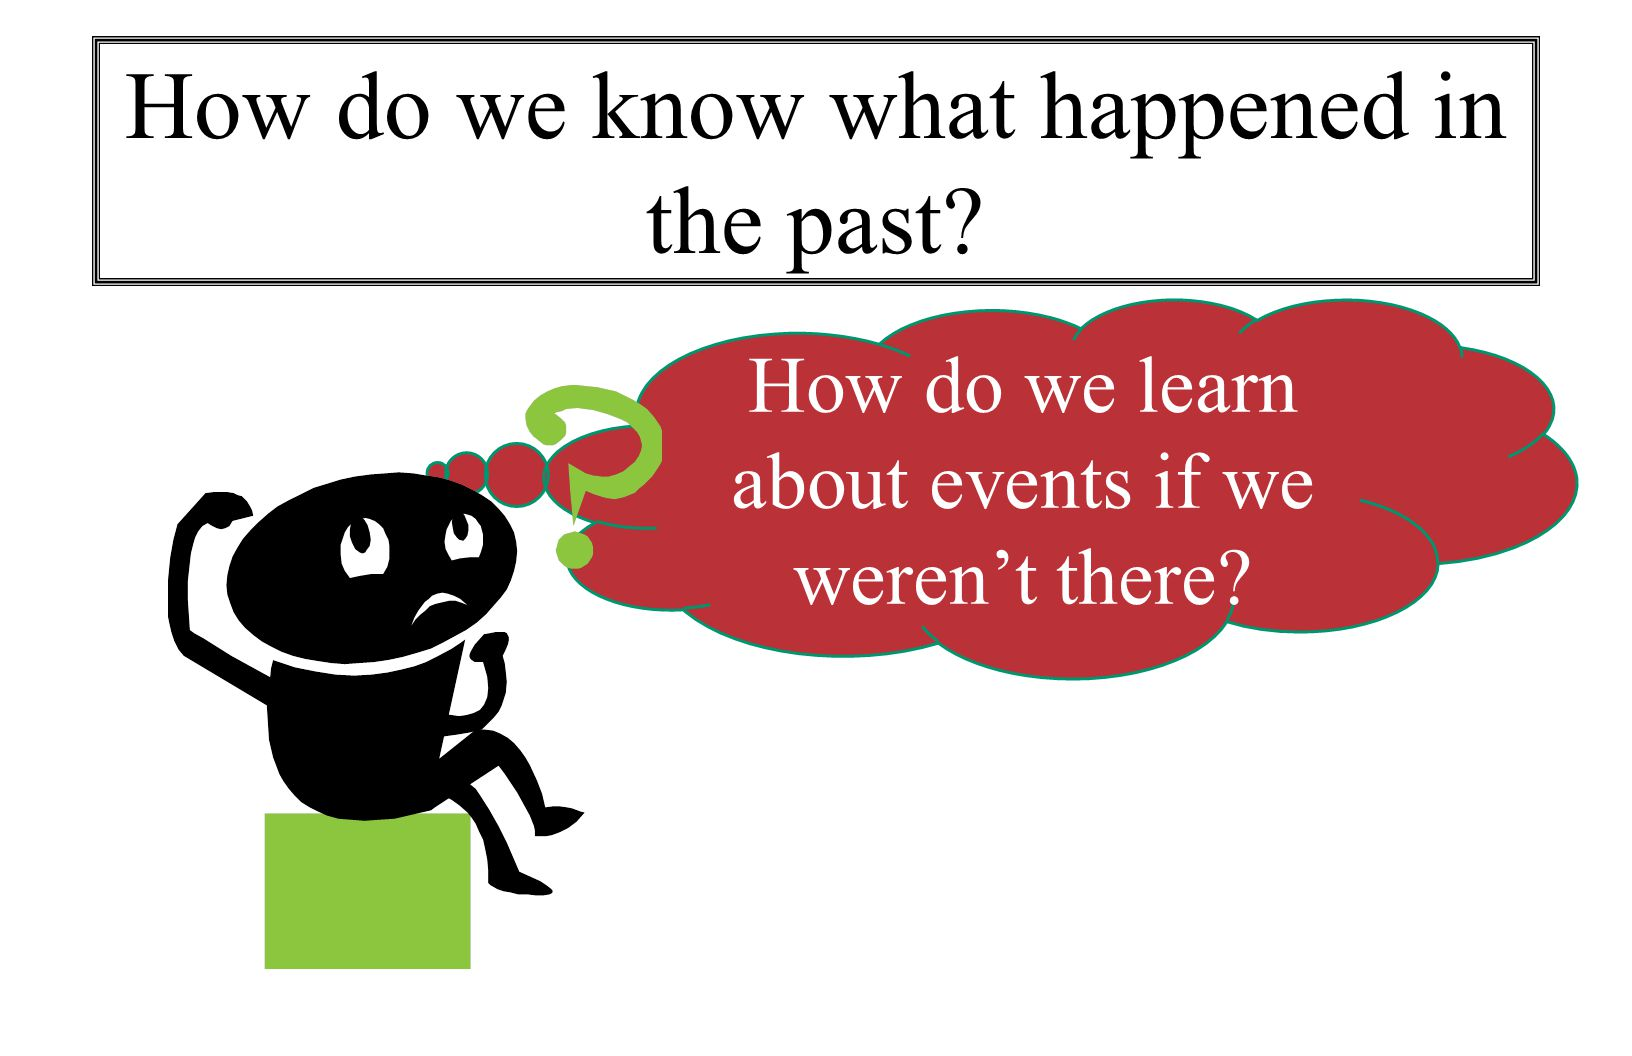 How do we learn about events if we weren't there How do we know what happened in the past